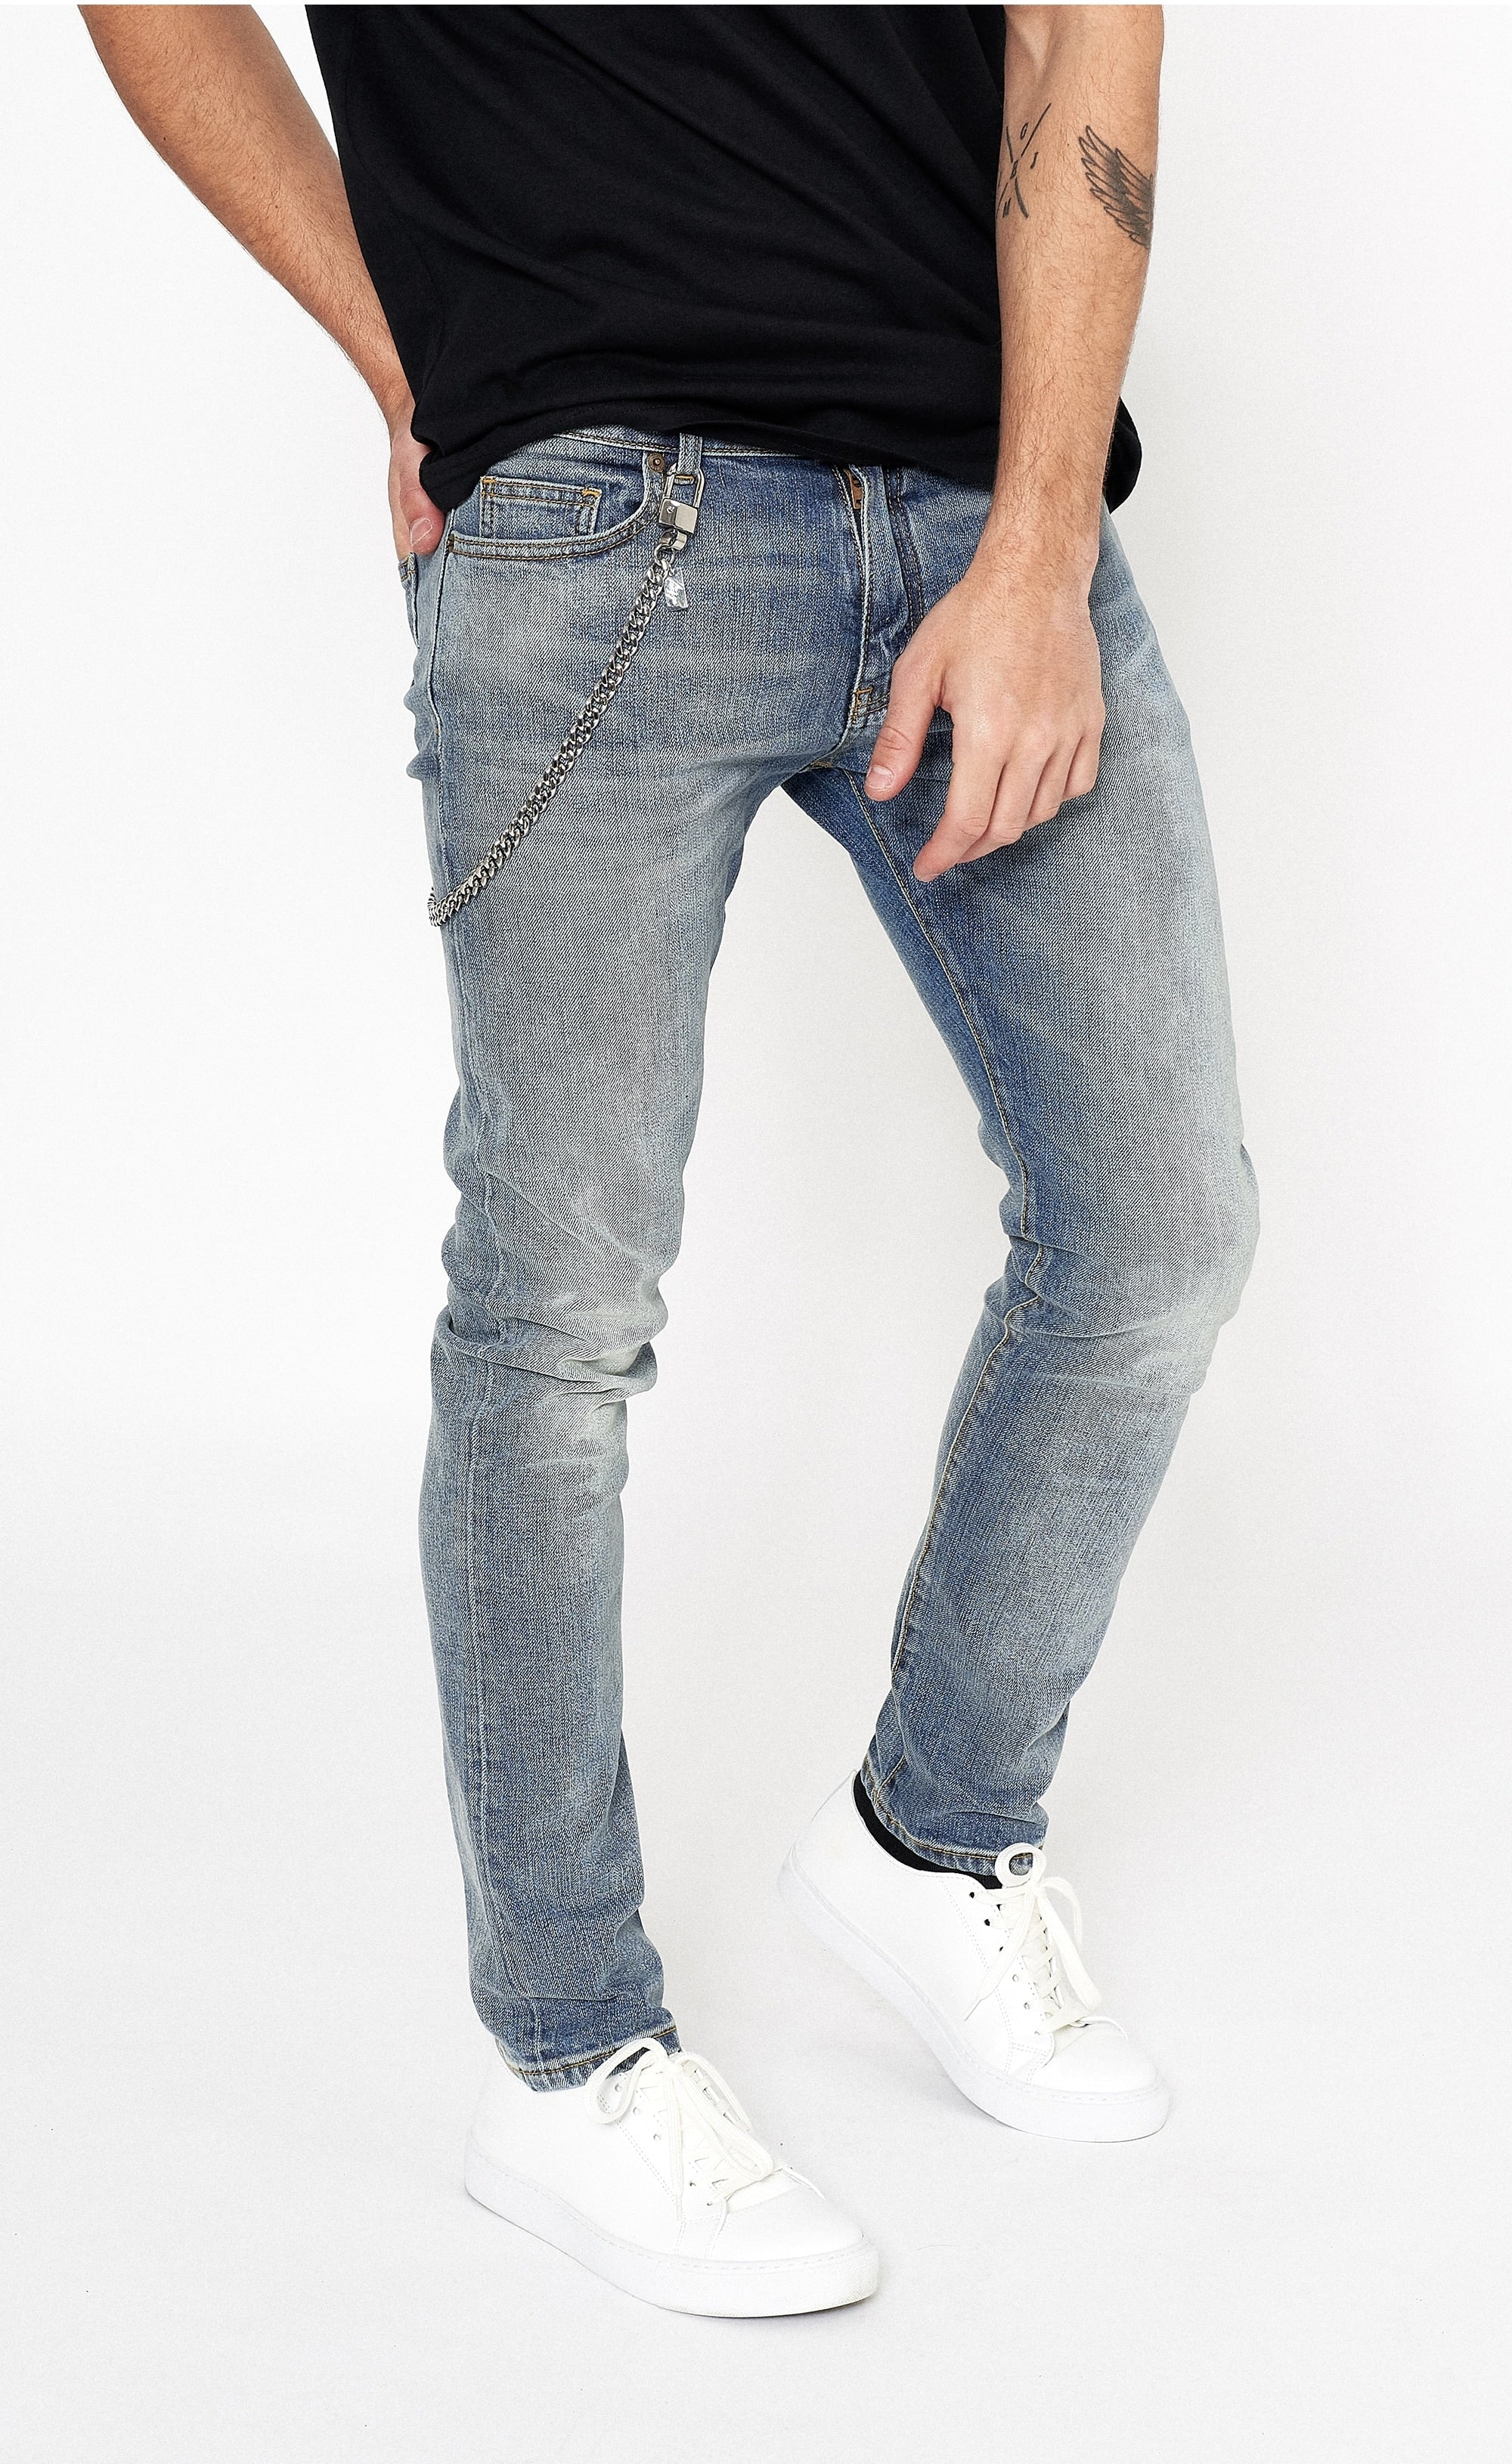 CLASSIC SKINNY JEANS - BLUE - Forage-Clothing